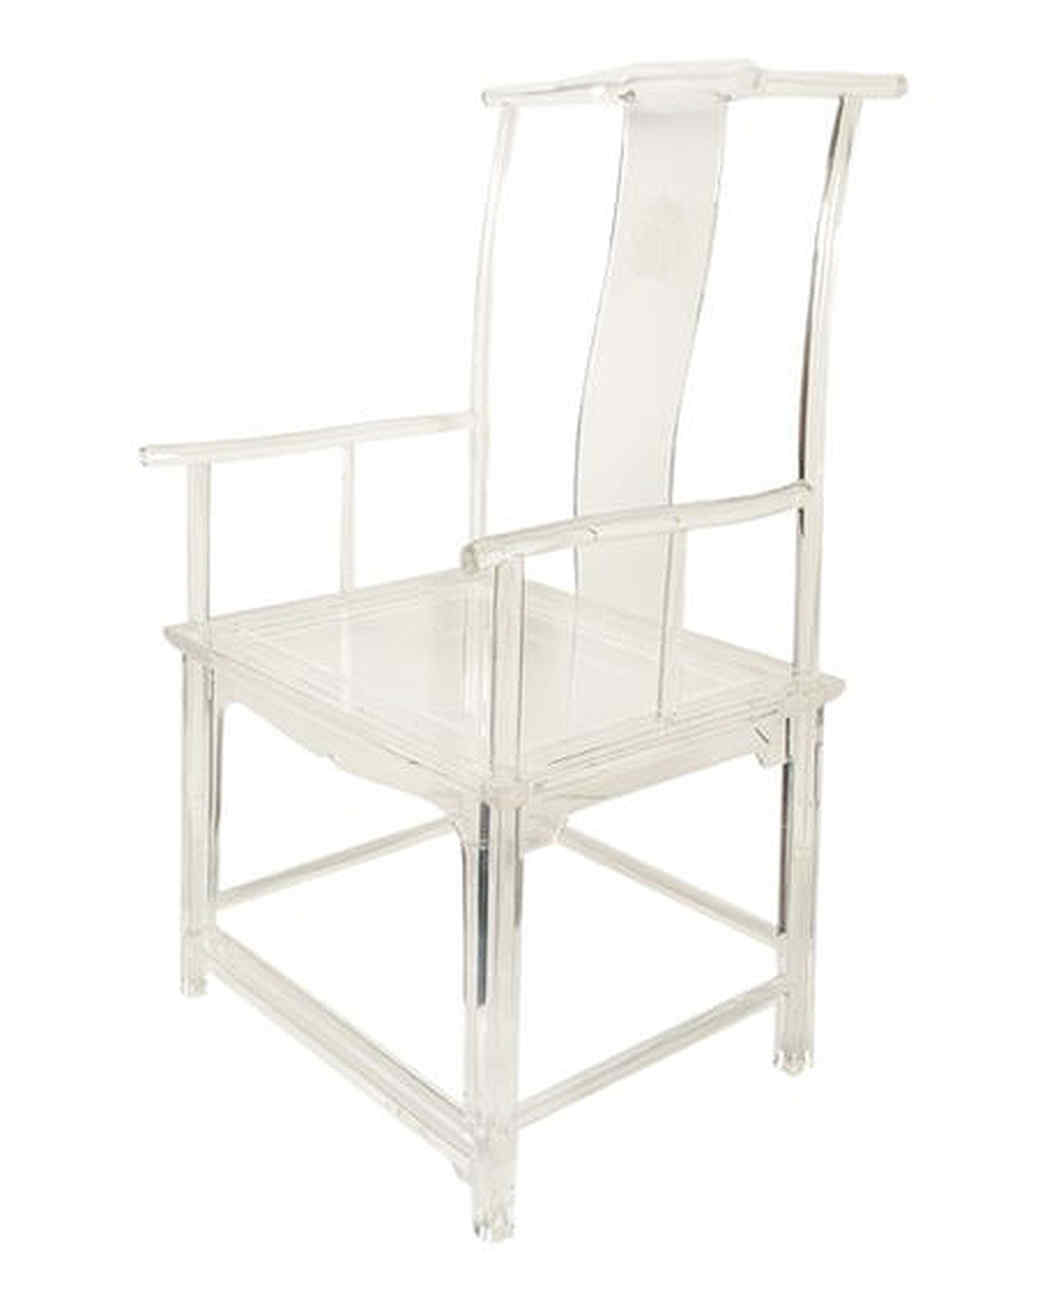 loving lucite ellis interior kelli image the cupboard choice clear october furniture celebrity